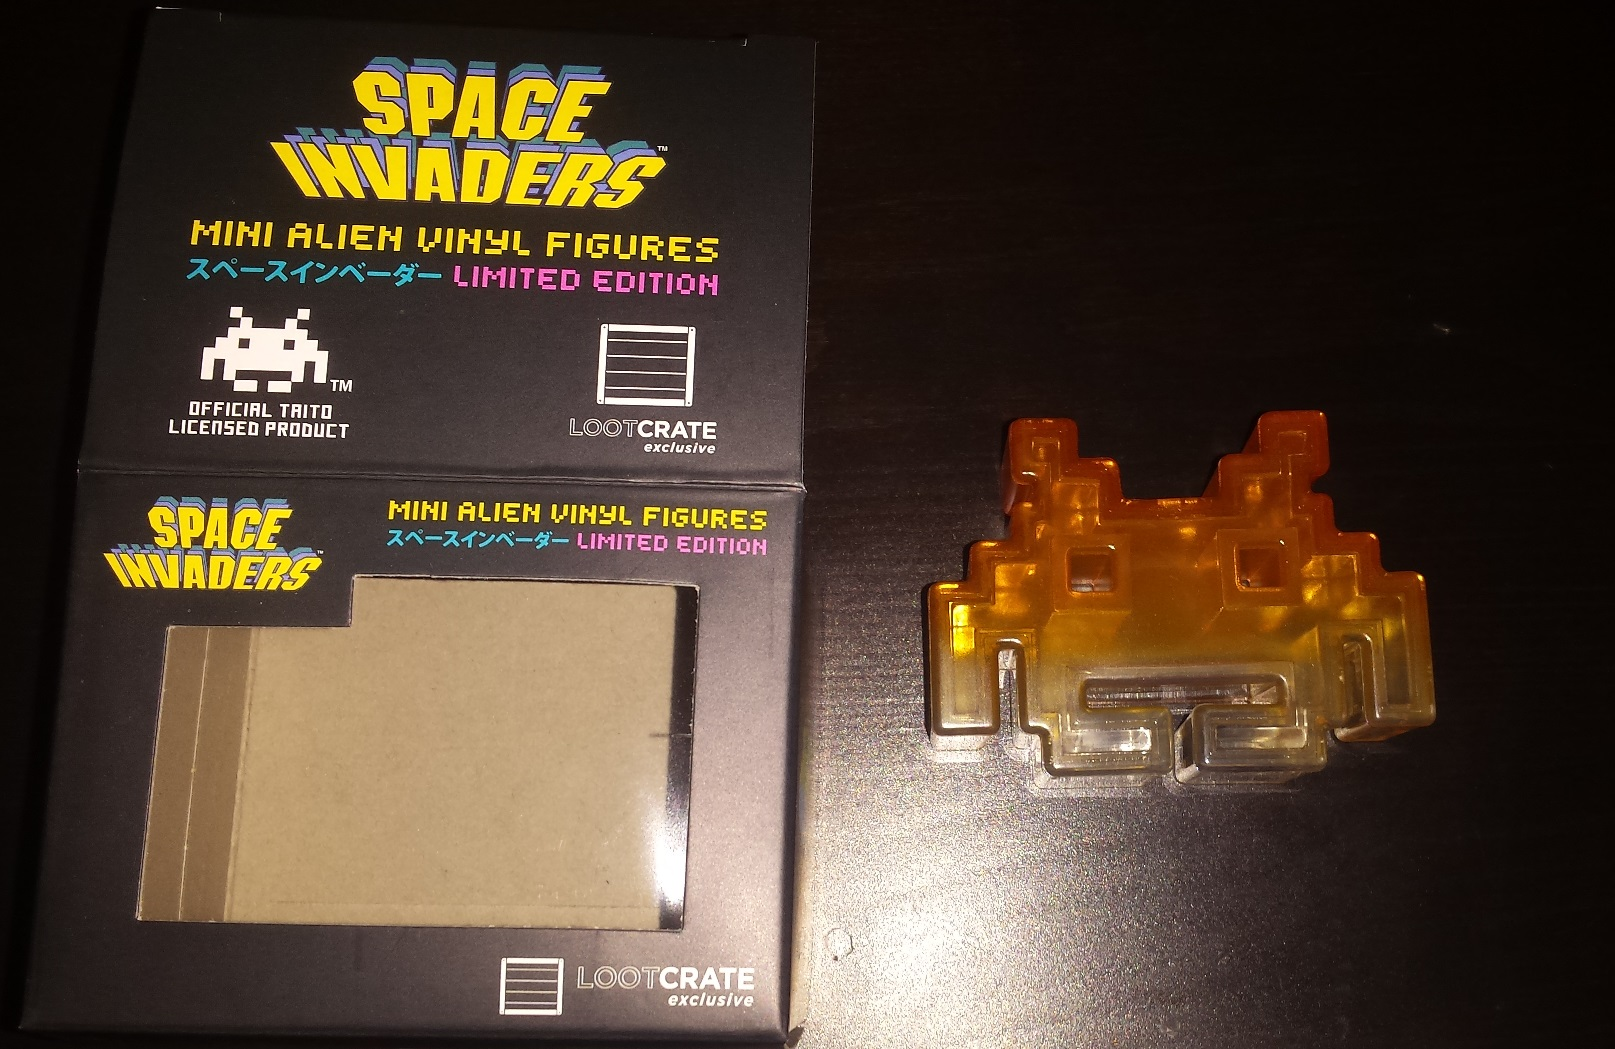 Space invaders, loot crate january 2016, loot crate unboxing, the fifth element, x files, invasion